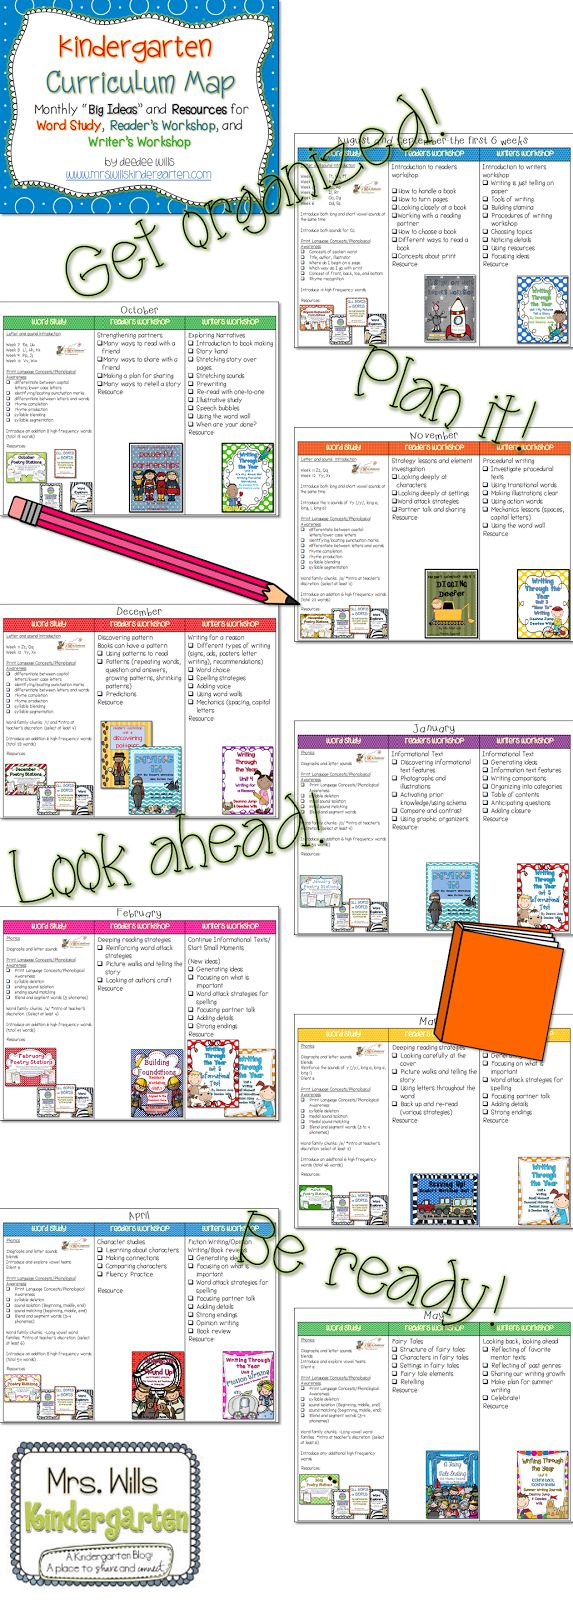 Worksheet Kindergarten Curriculum Free 1000 ideas about kindergarten curriculum on pinterest mrs wills freeyearly